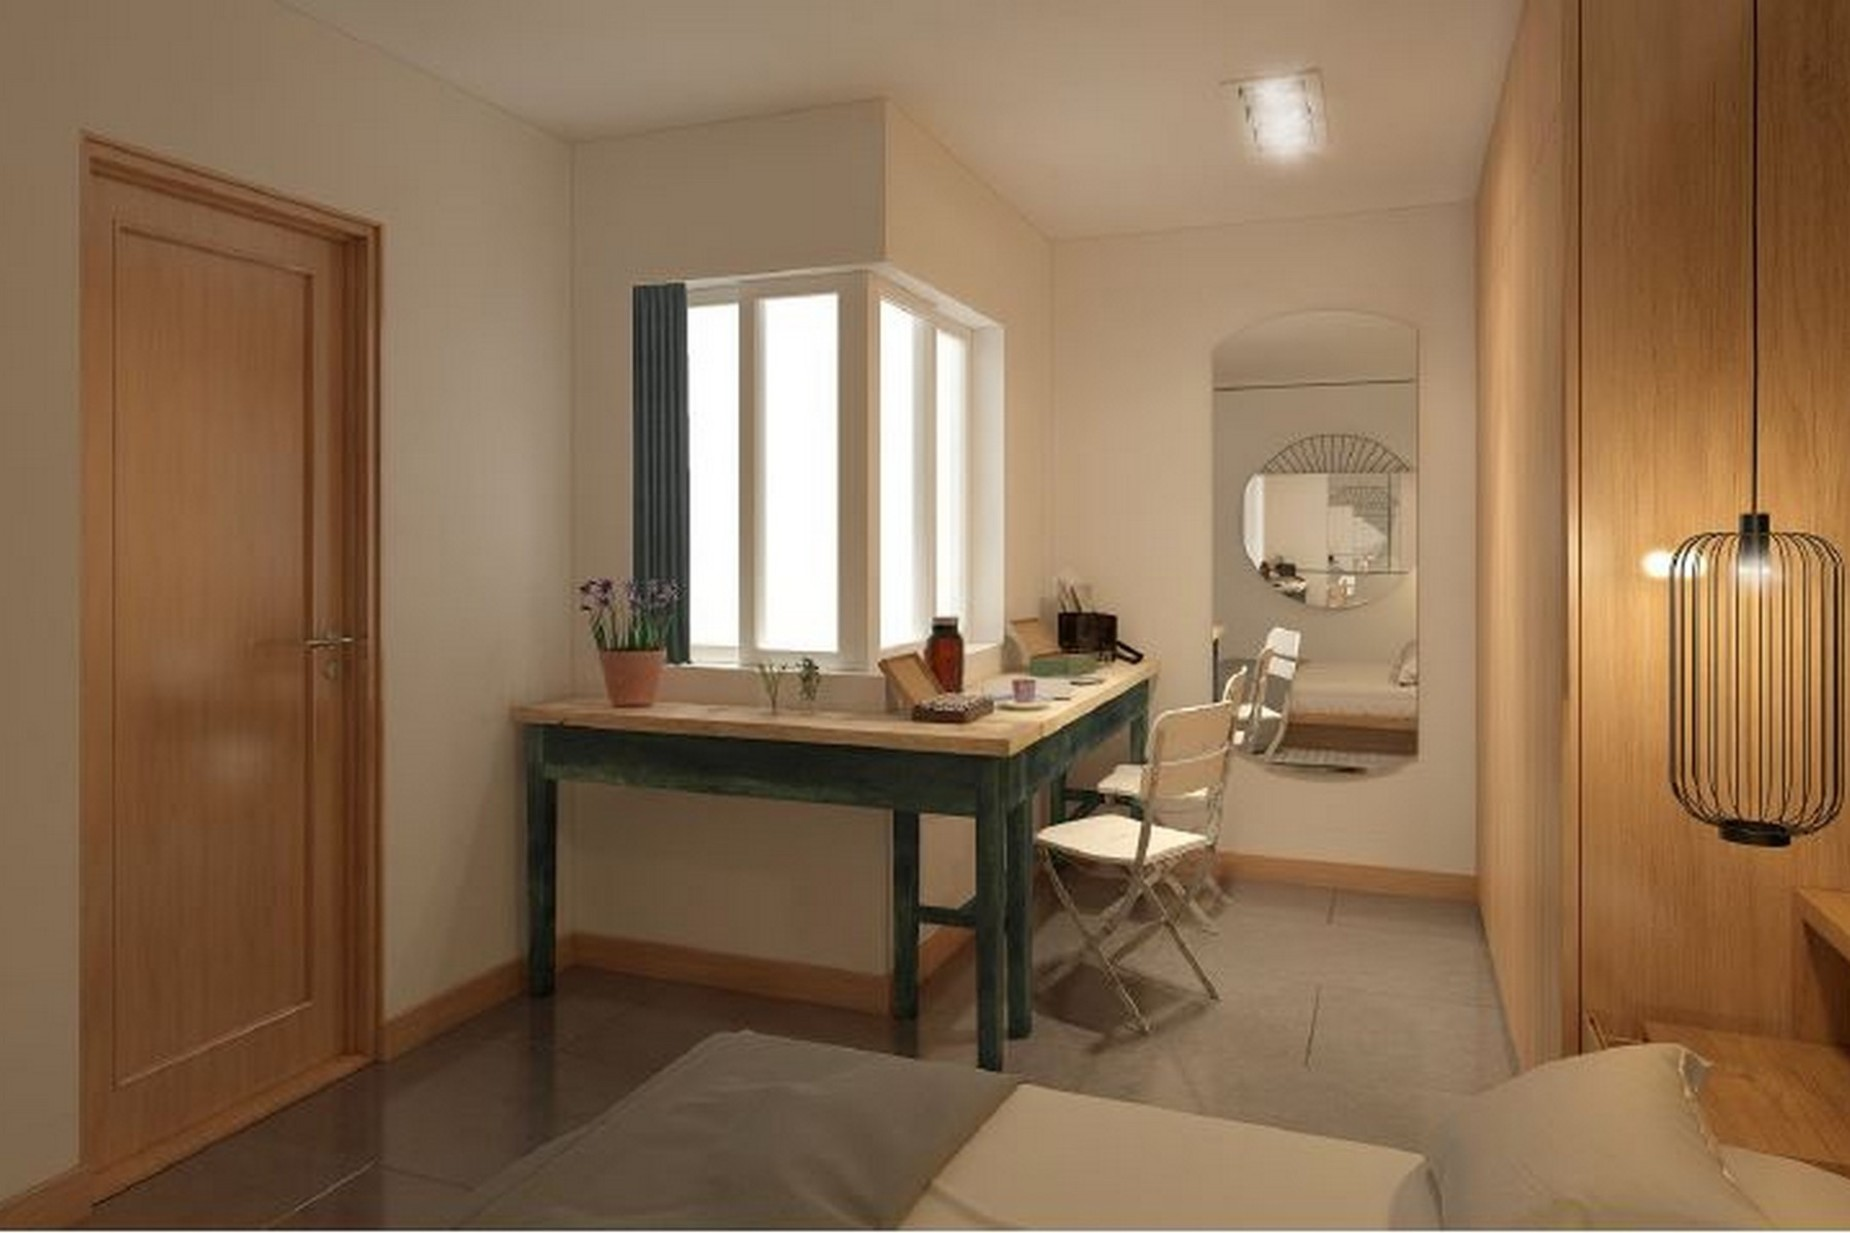 2 bed Maisonette For Sale in Attard, Attard - thumb 4